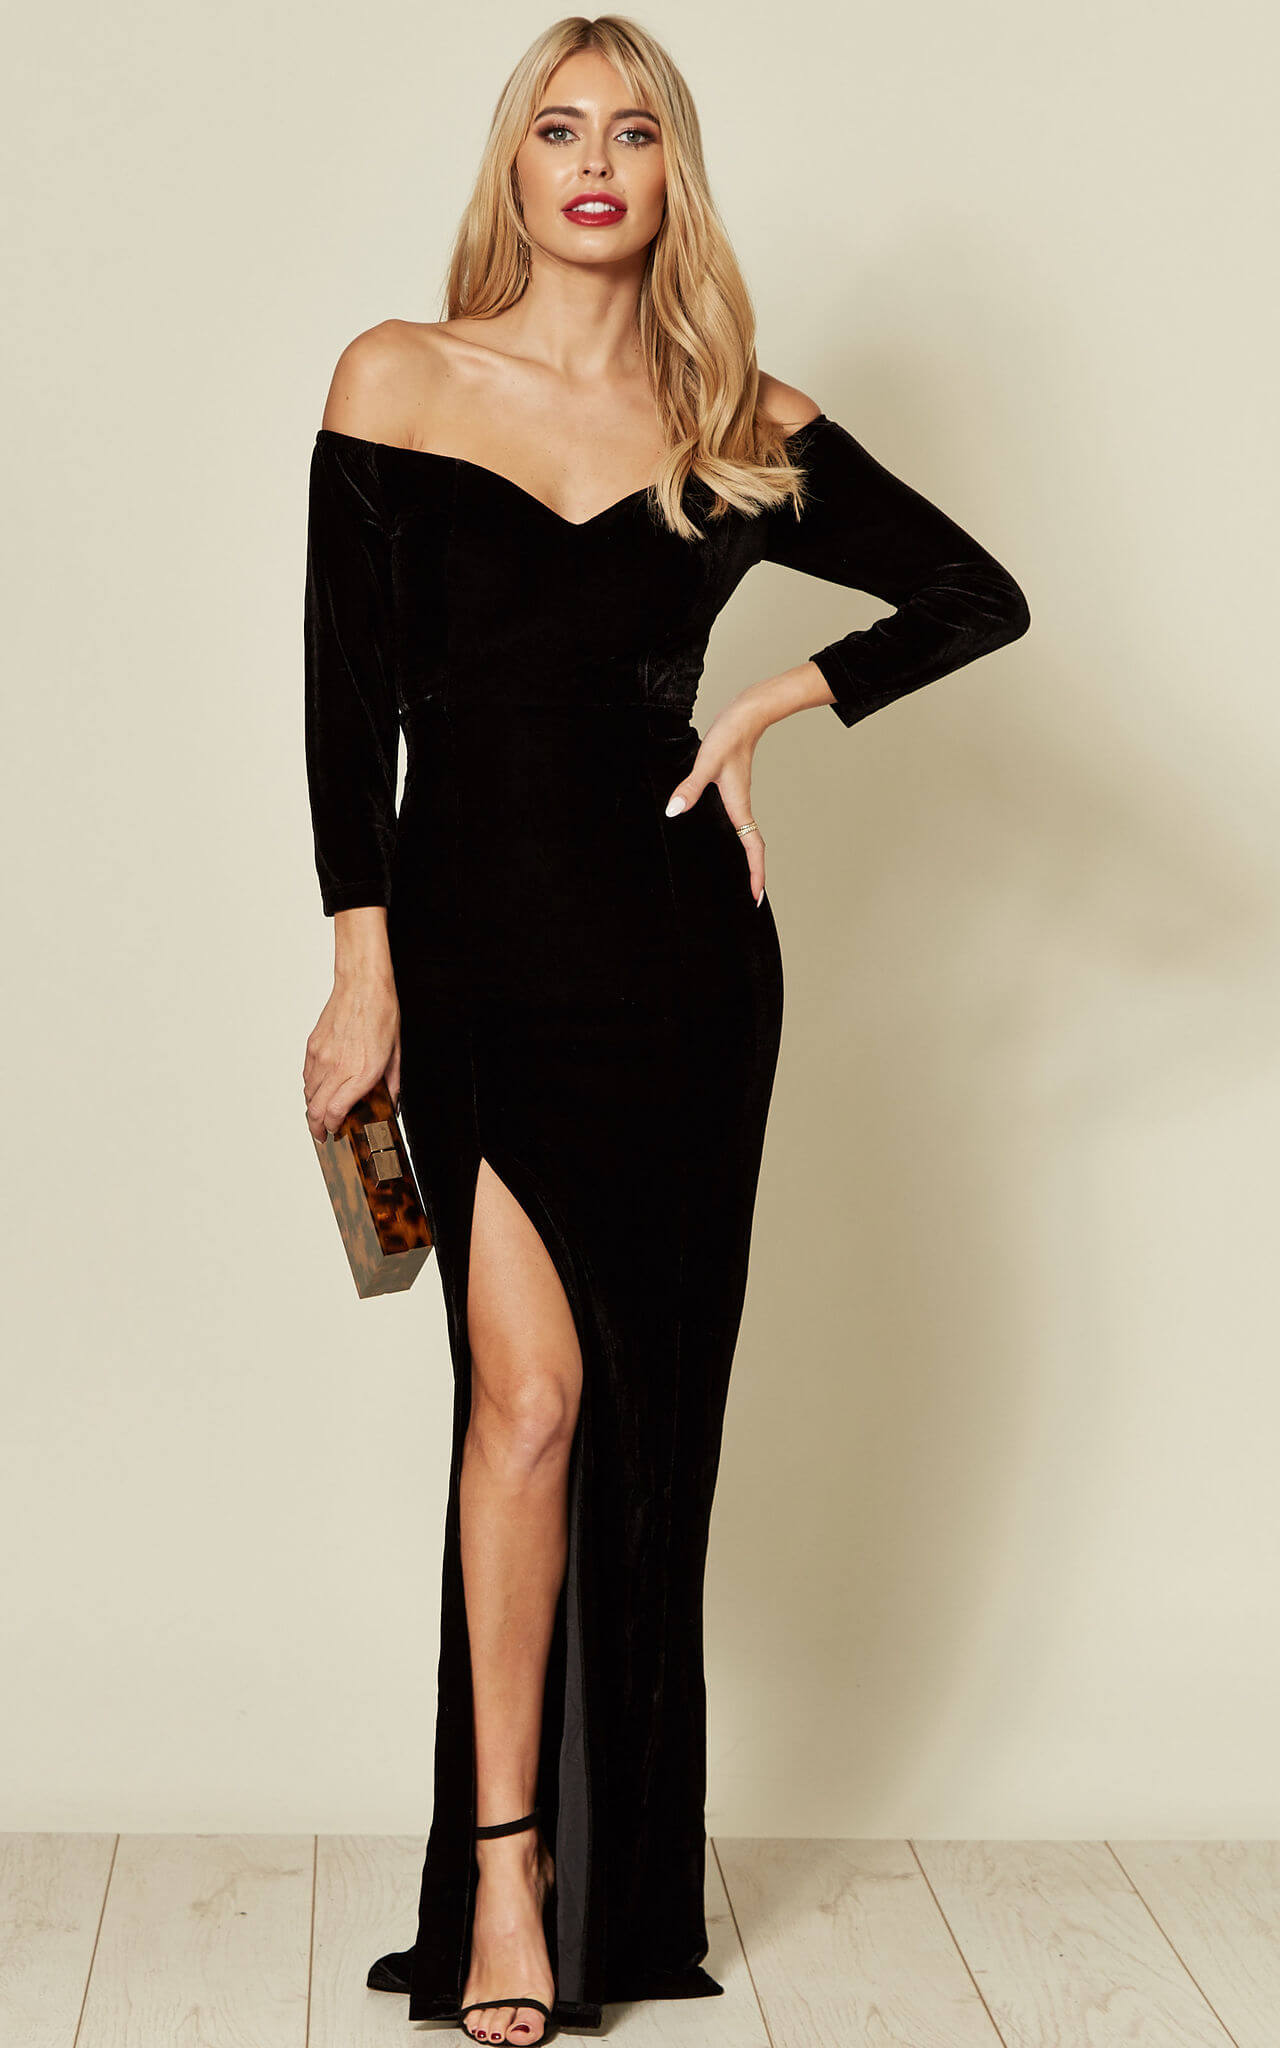 Model wears off the shoulder black velvet maxi dress with side slit and barely there heels